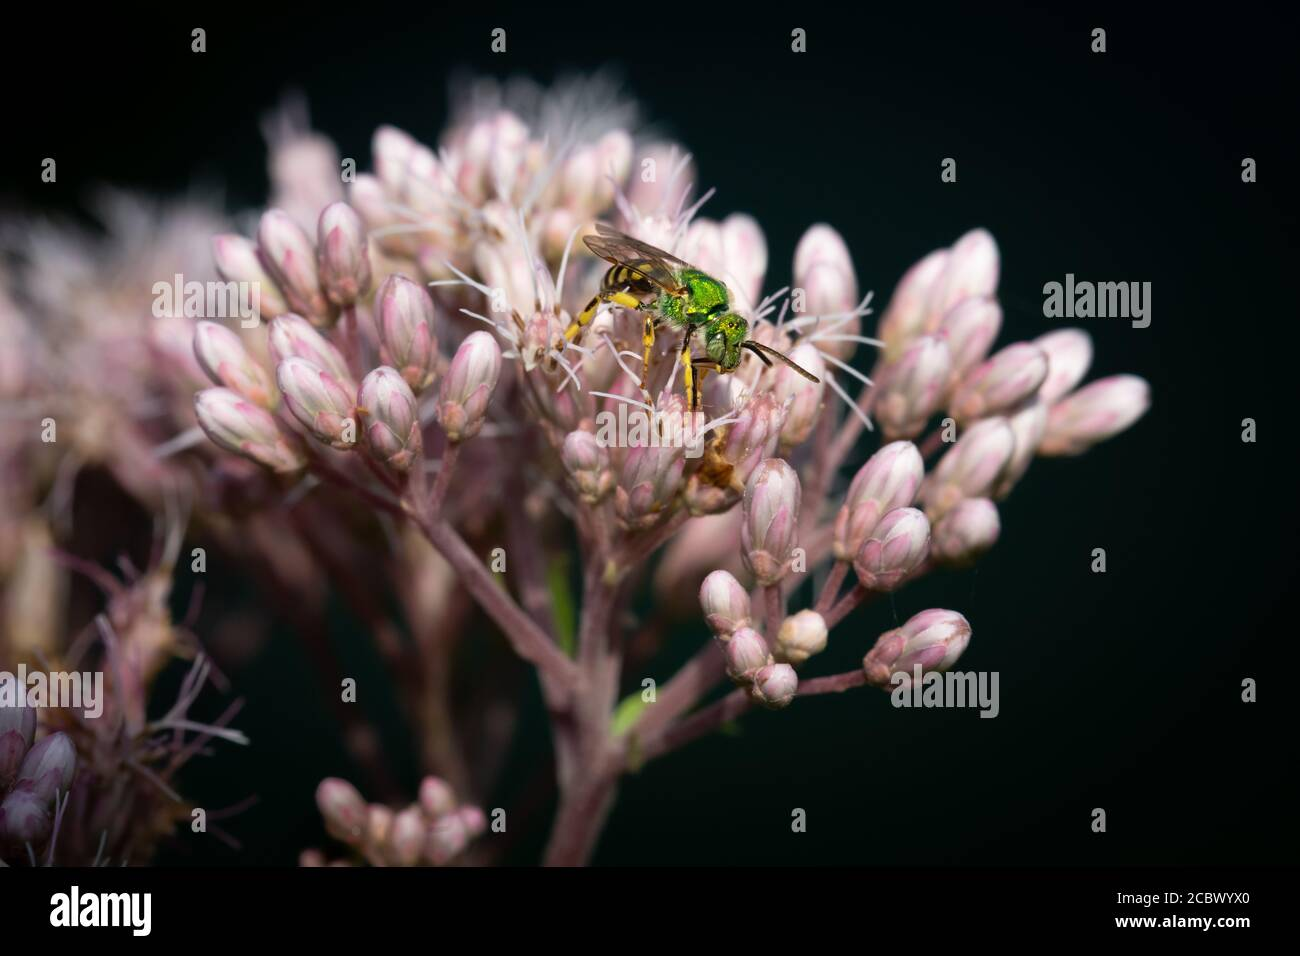 A bicolored striped-sweat bee forages for nectar on blooming Spotted Joe Pyeweed flowers at Dufferin Islands in Niagara Falls, Canada. Stock Photo